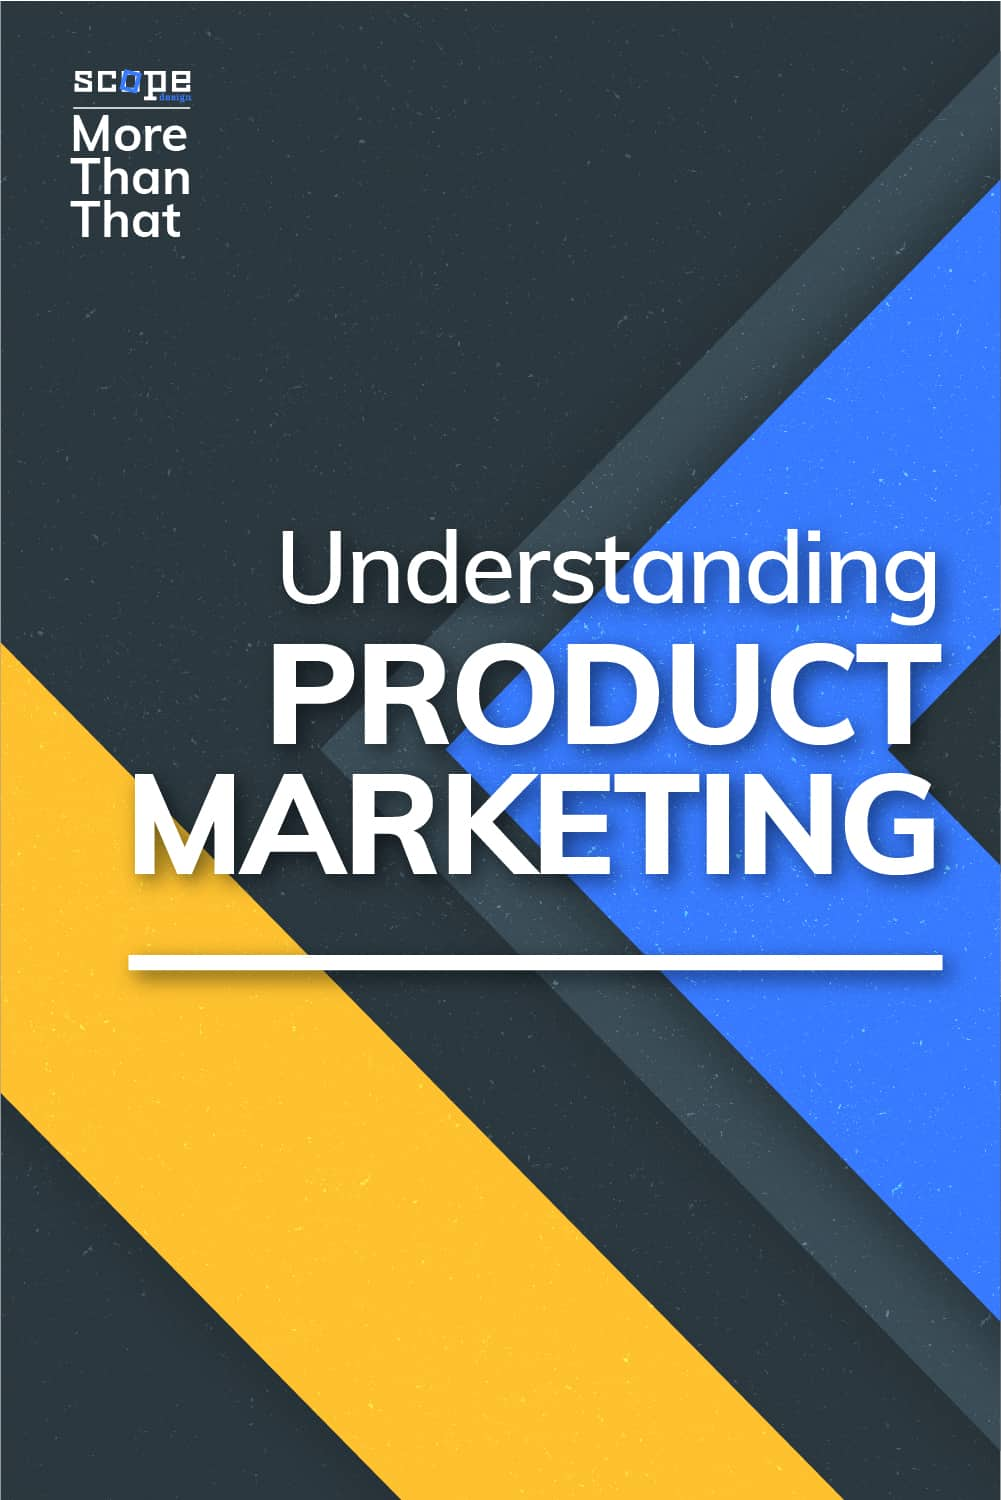 For this month's More Than That Series, we'll be talking about Understanding Product Marketing. Read on because... It's so much more than that! via @scopedesign